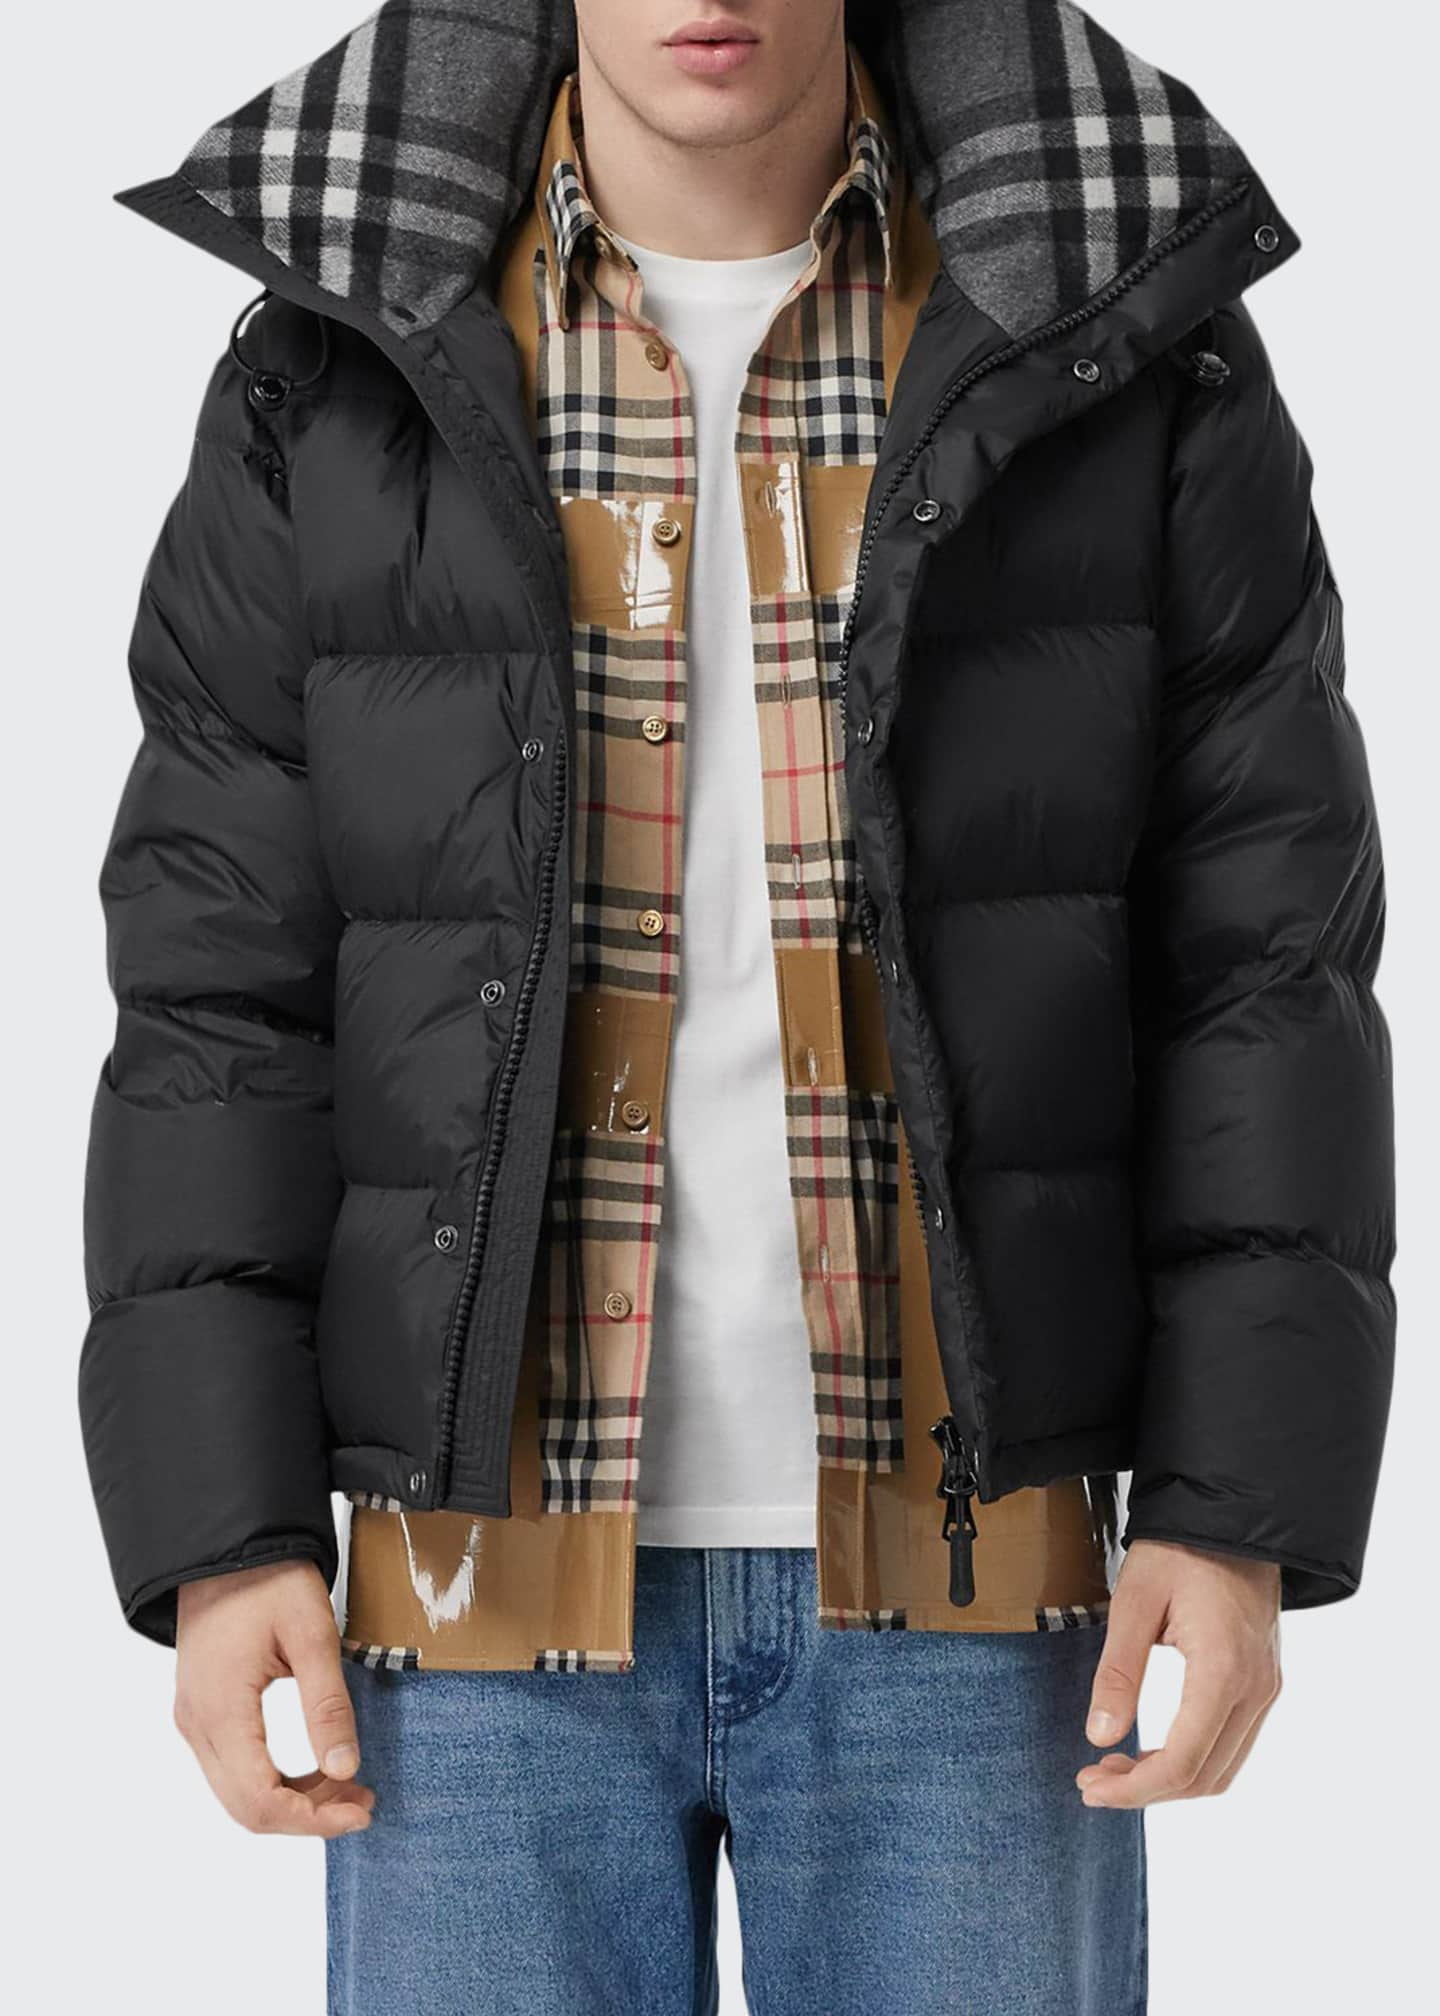 Burberry Men's Lockwell Quilted Puffer Jacket w/ Signature